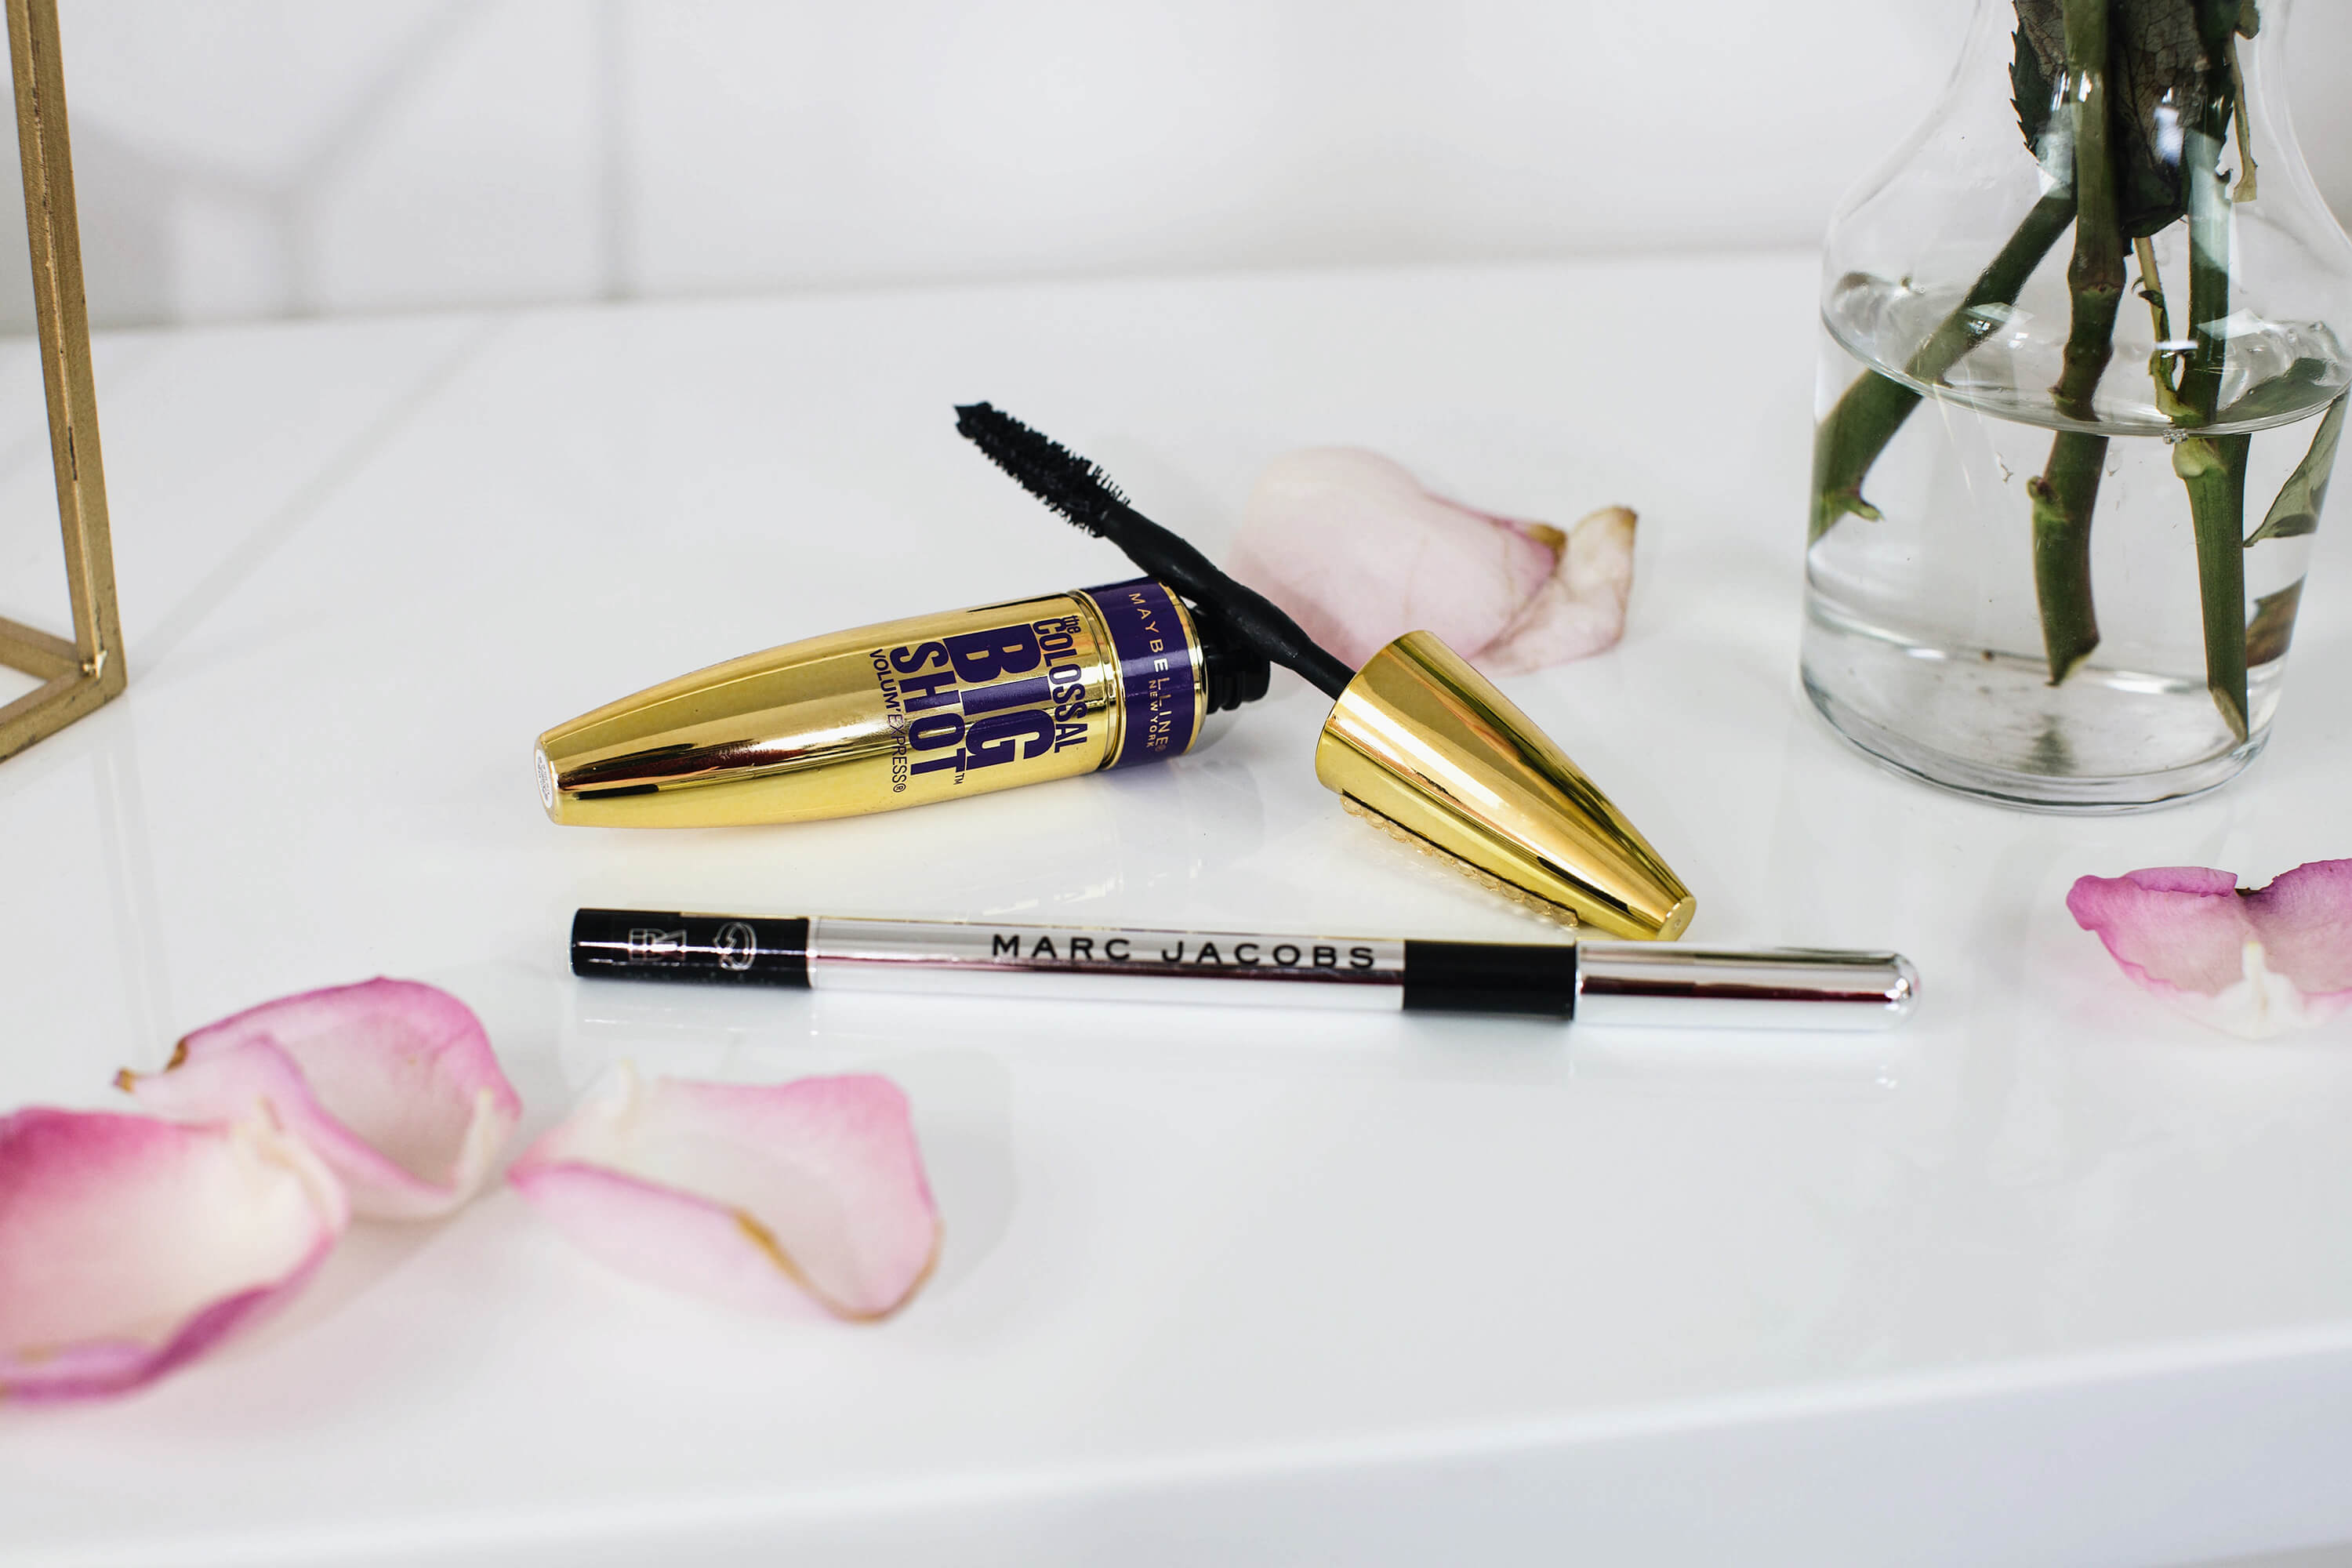 sona selects february edition, sona gasparian's roundup of beauty favorites